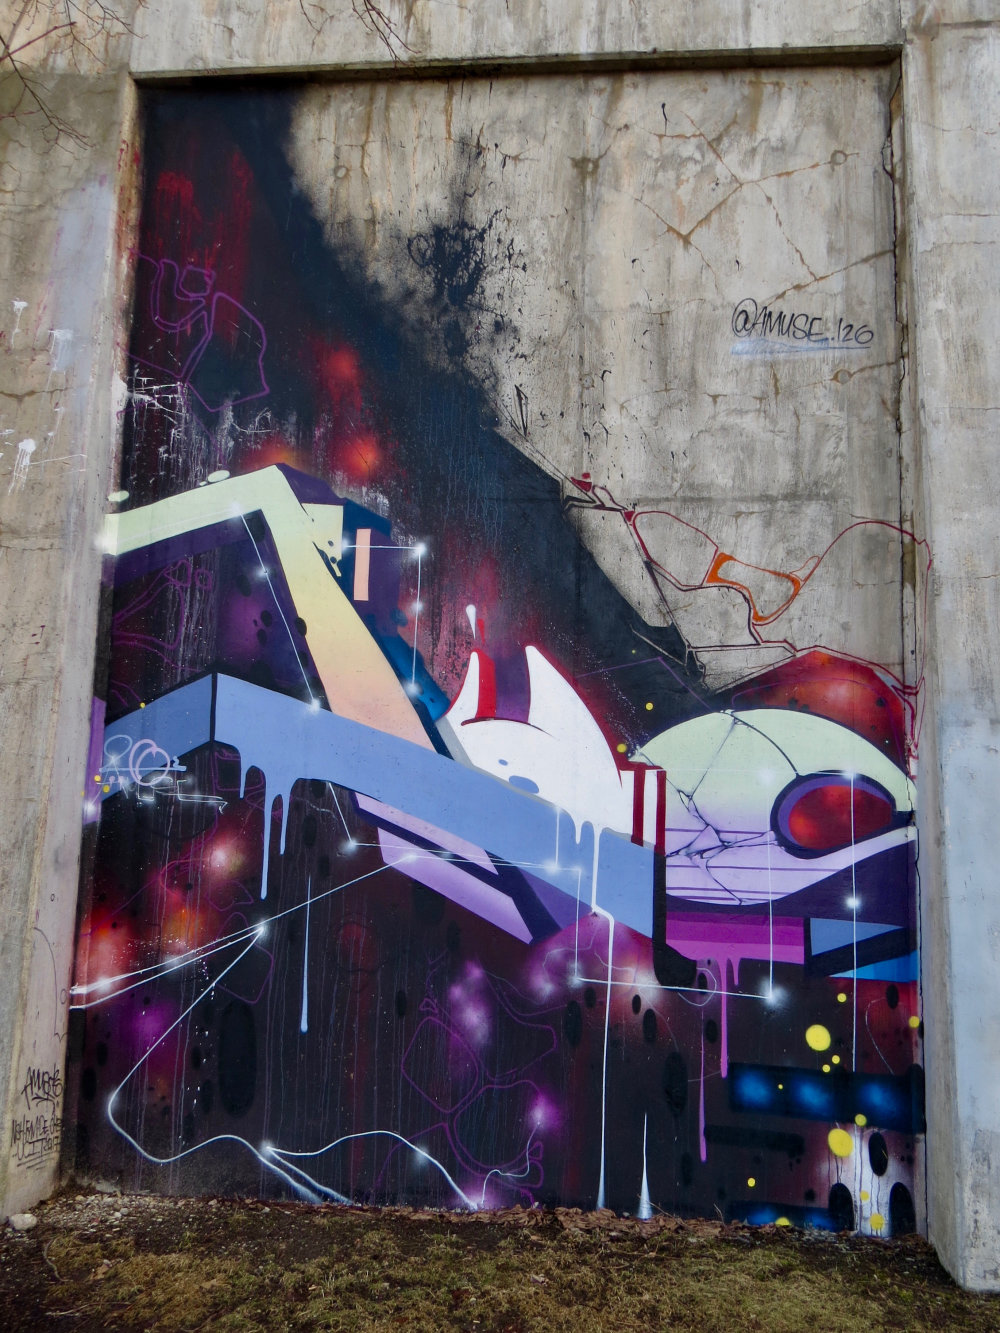 mural in Chicago by artist Amuse126